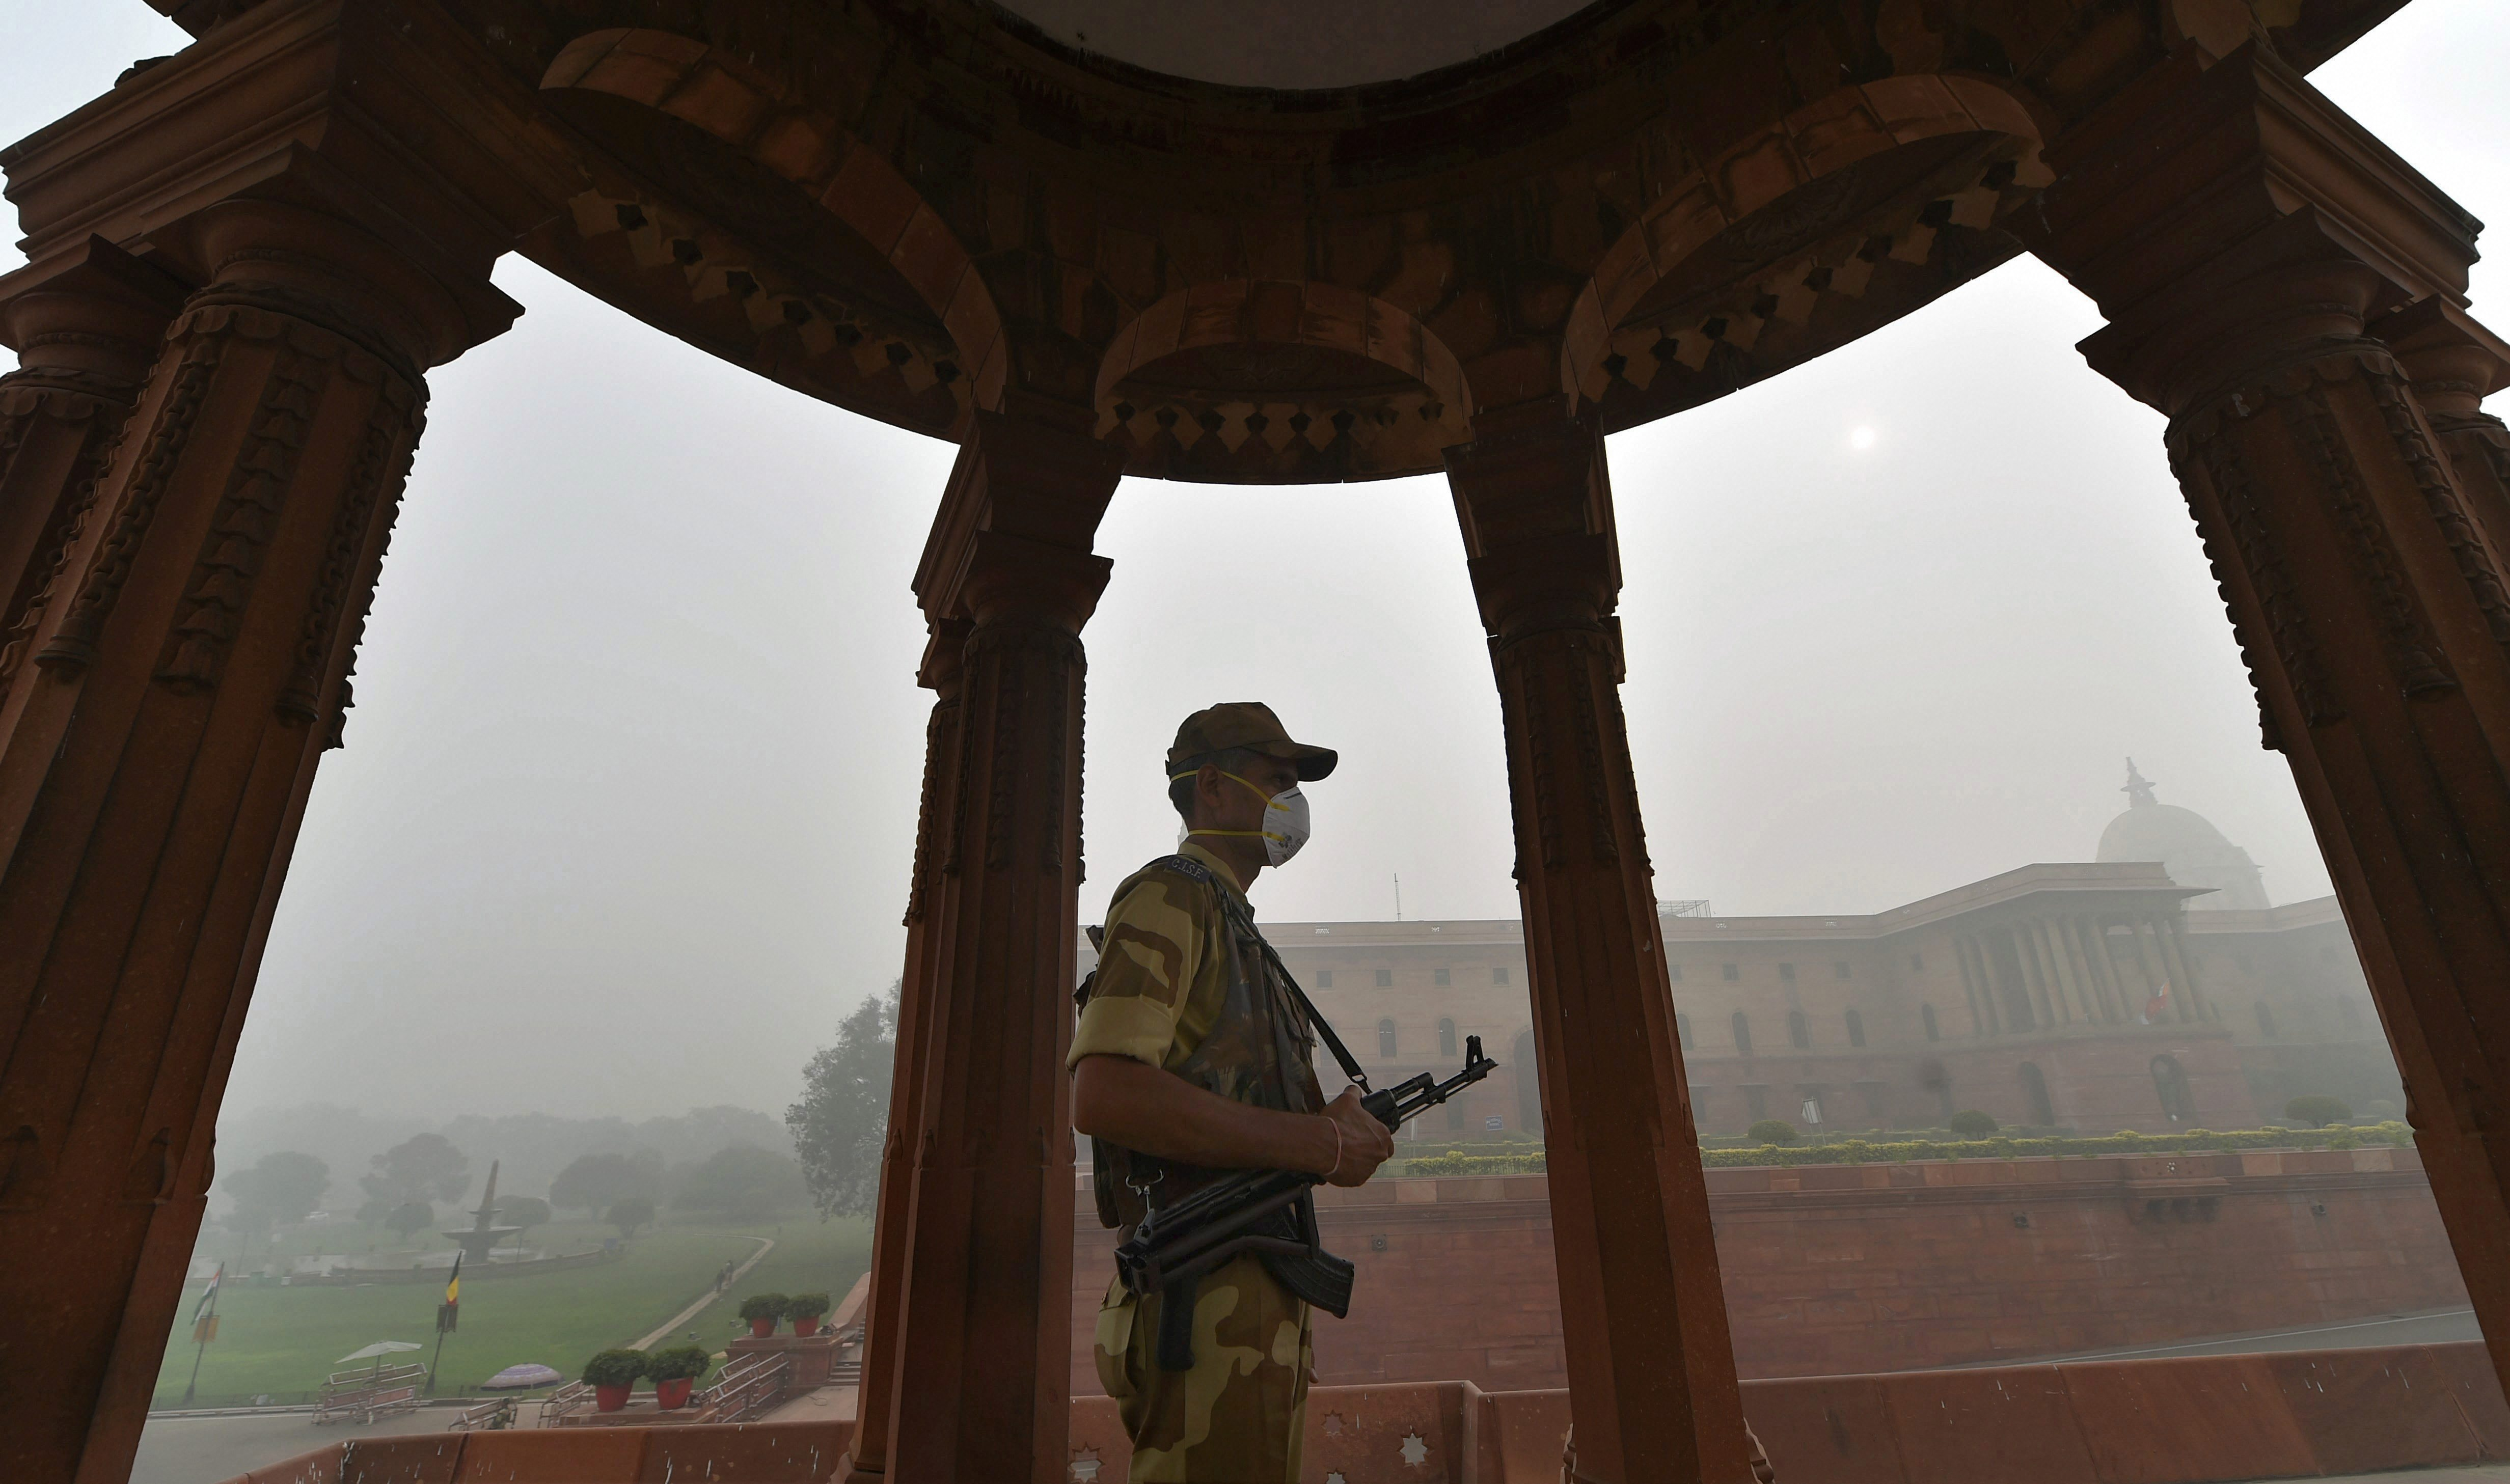 New Delhi: Security person wears mask to protect from heavy smog and air pollution at North Block in New Delhi on Wednesday. The smog and air pollution continue to be above the severe levels in Delhi NCR. PTI Photo by Vijay Verma(PTI11_8_2017_000088A)